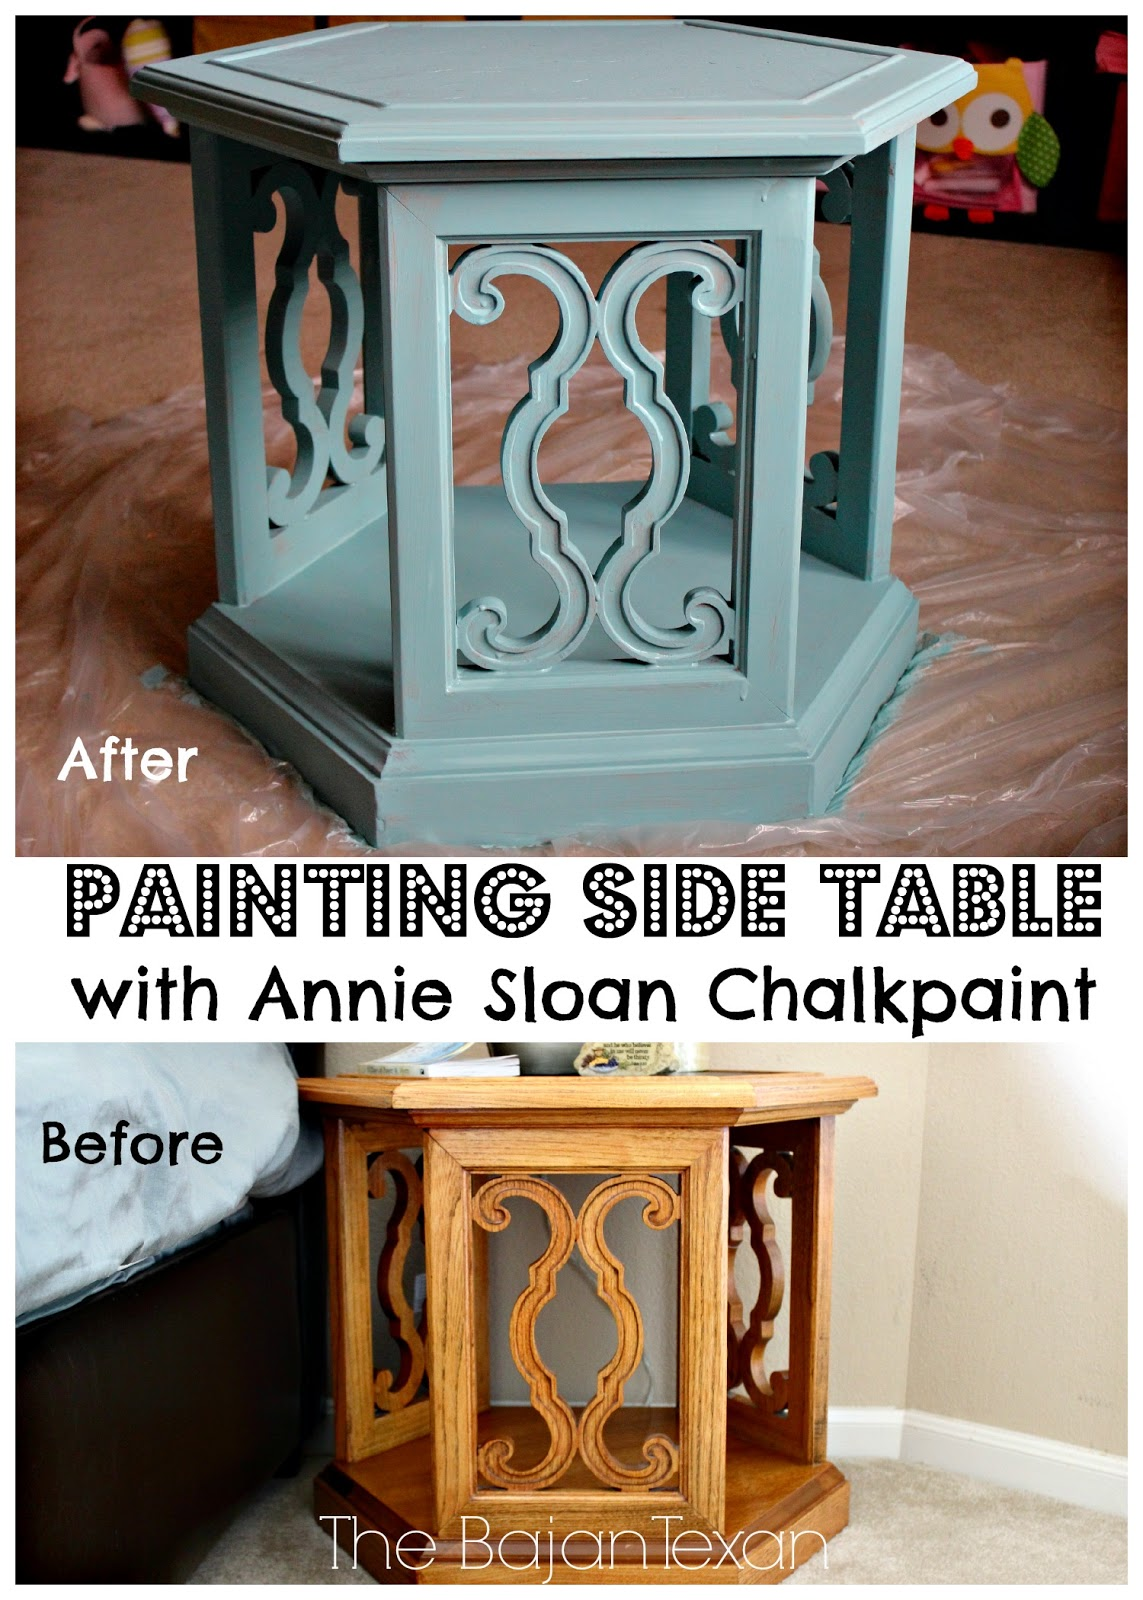 How To Paint Furniture With Annie Sloan Paint   Got An Old Looking Furniture  That